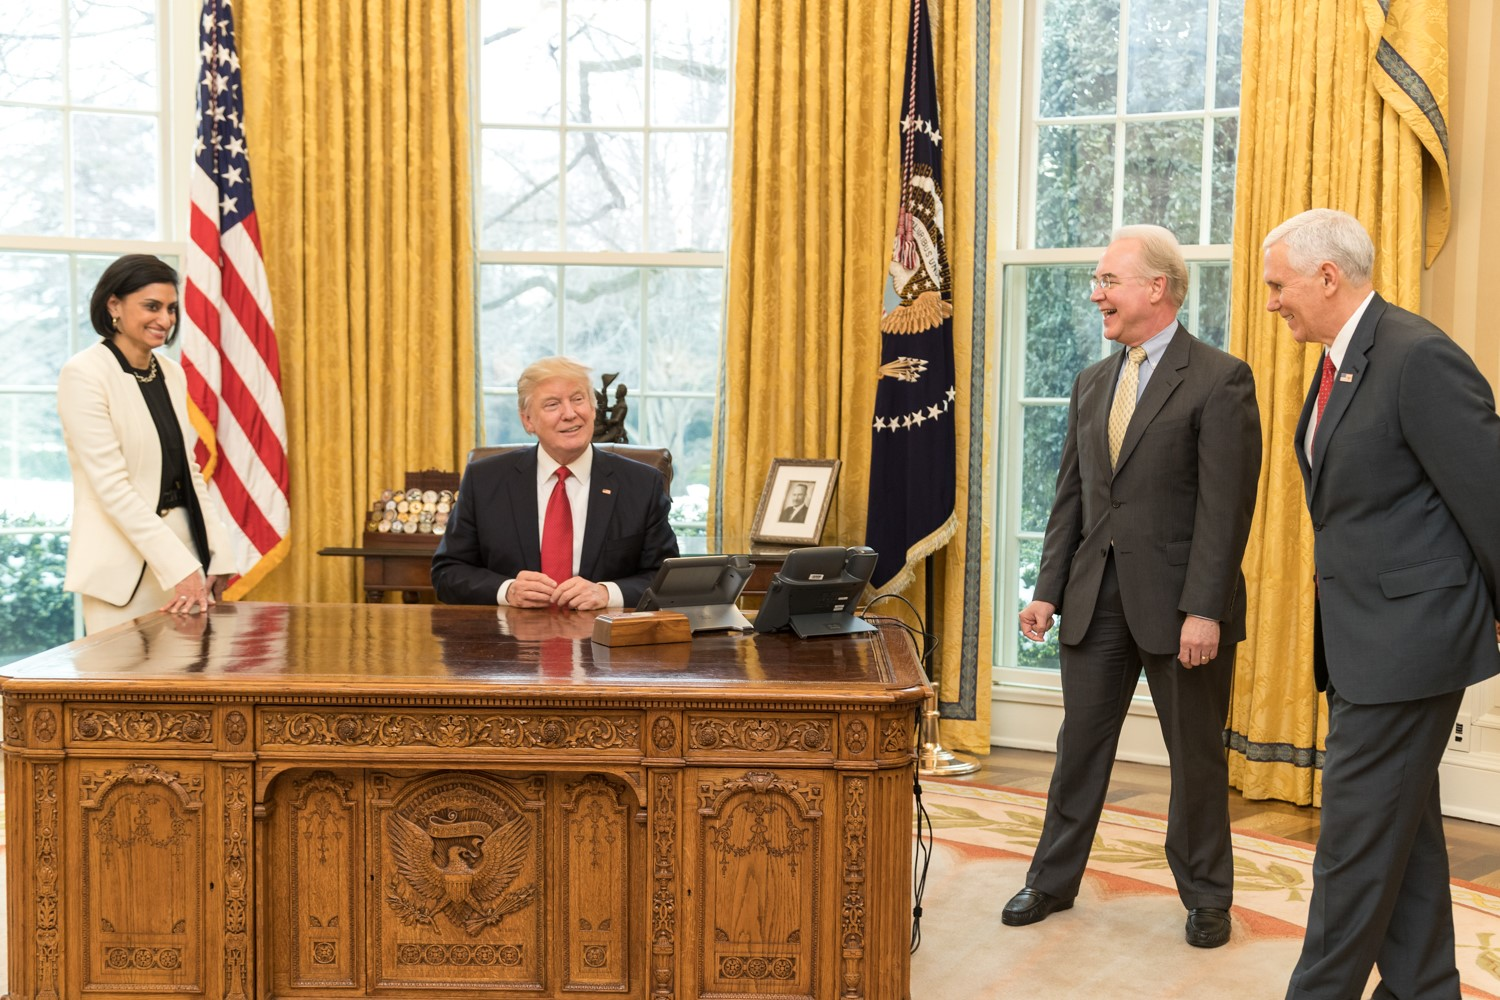 US President Donald Trump shares a laugh with (clockwise from left) Seema Verma, Administrator of the Centers for Medicare and Medicaid Services, Secretary Tom Price, U.S. Secretary of Health and Human Services, and Vice President Mike Pence in the Oval Office of the White House.